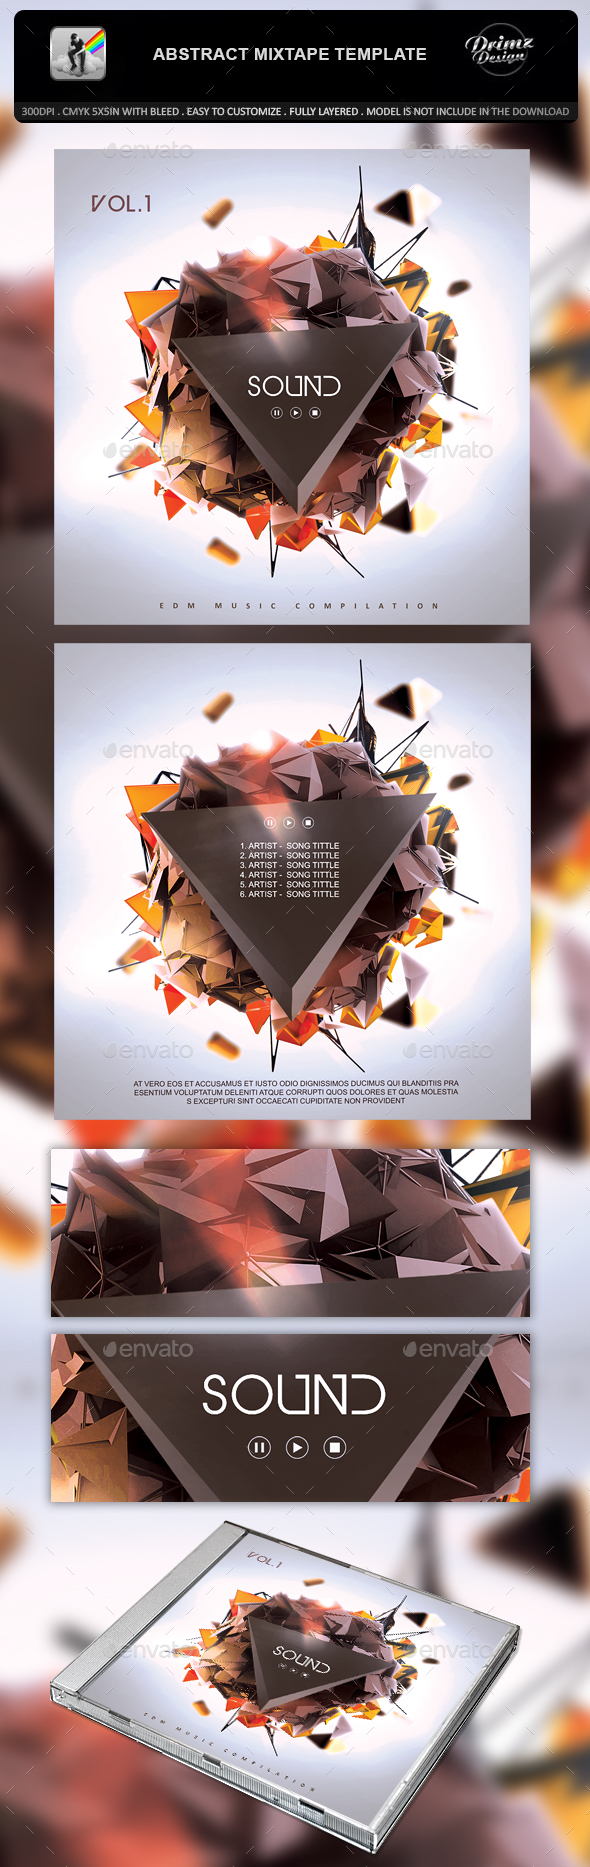 Mixtape Template Graphics Designs Templates From Graphicriver